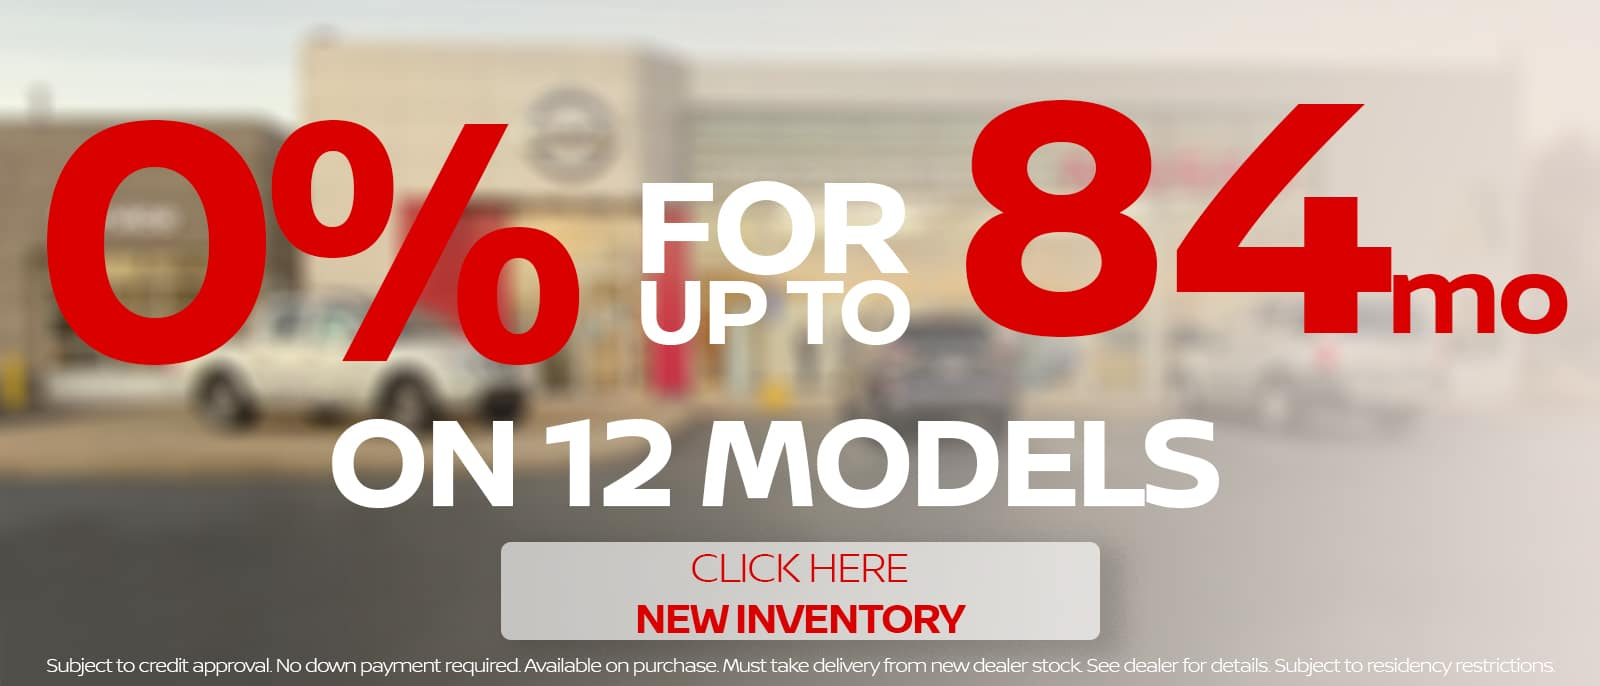 0% for 84 months on 12 models